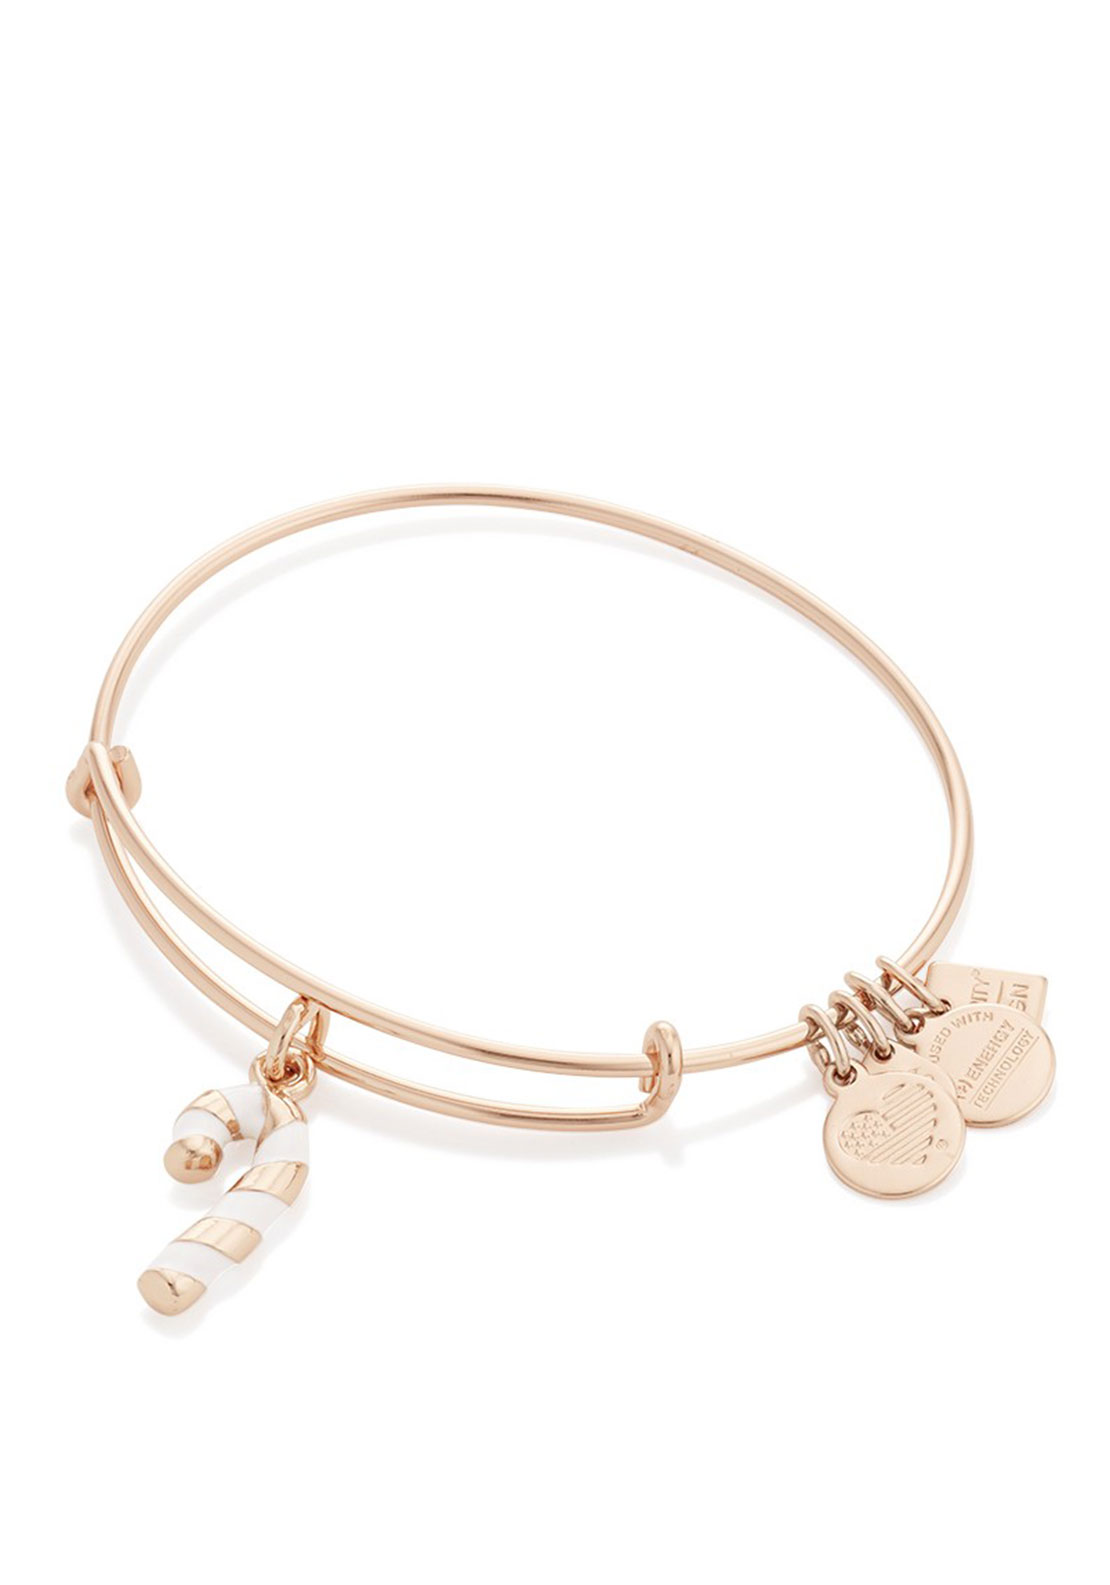 Alex and Ani Candy Cane Charm Bracelet, Rose Gold